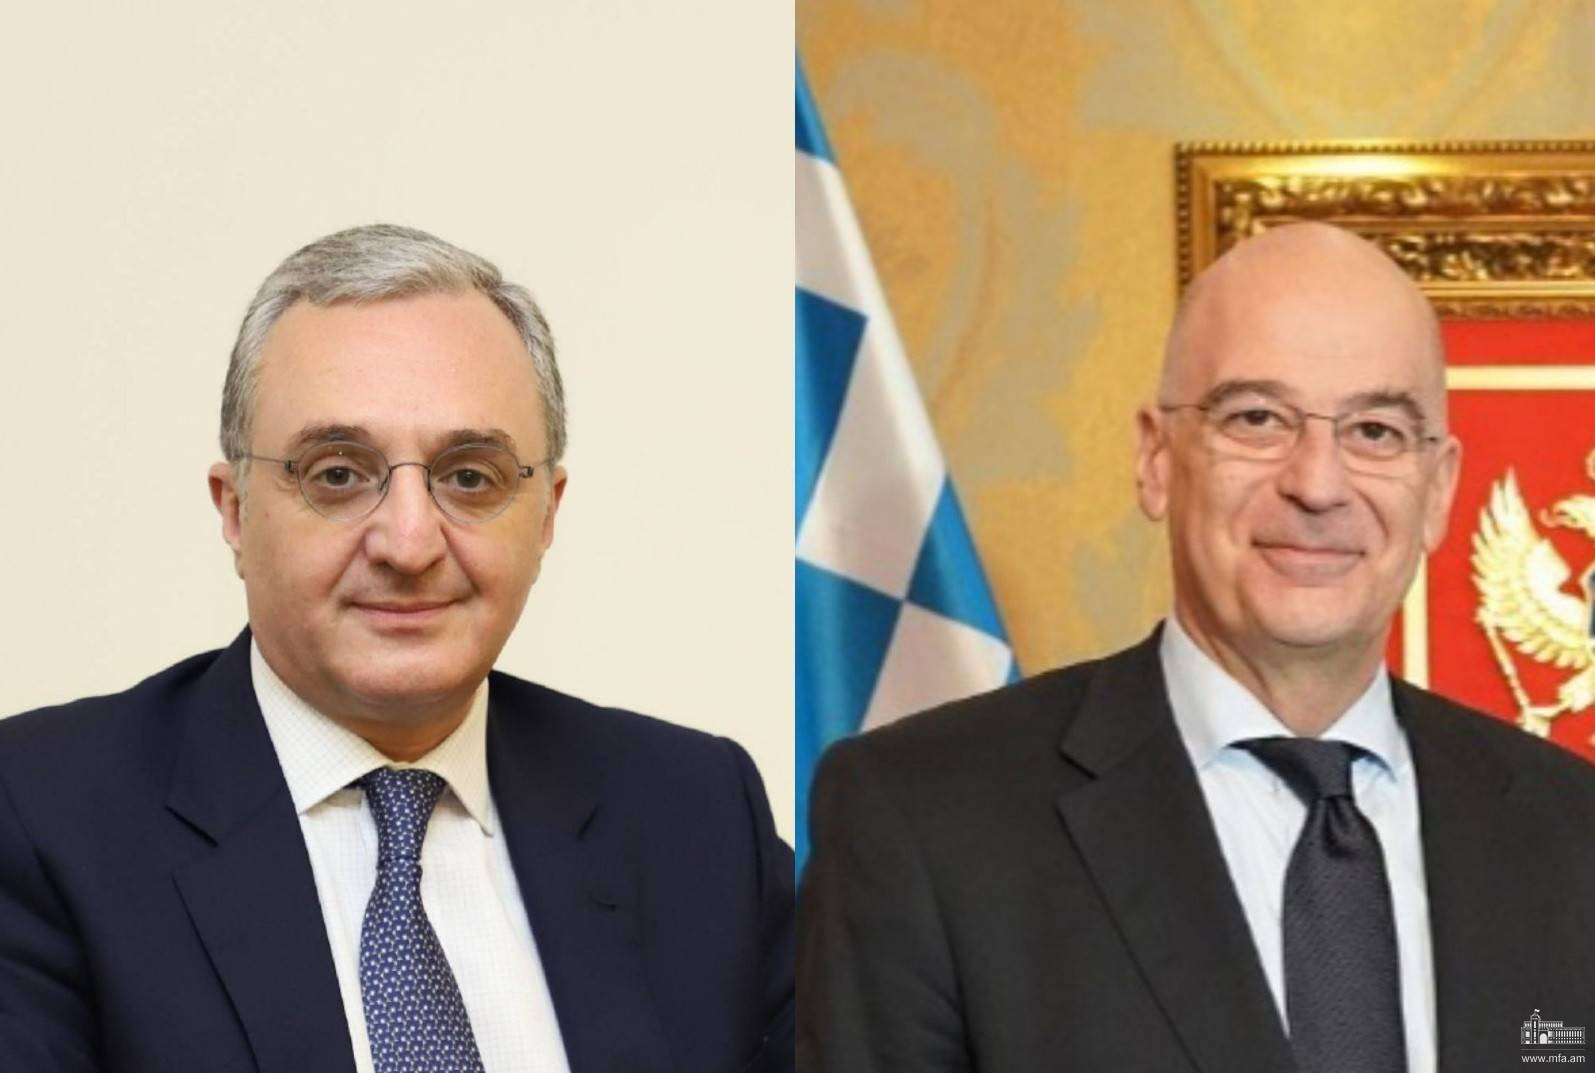 Foreign Minister of Armenia Zohrab Mnatsakanyan had a phone conversation with Nikos Dendias, Minister of Foreign Affairs of Greece